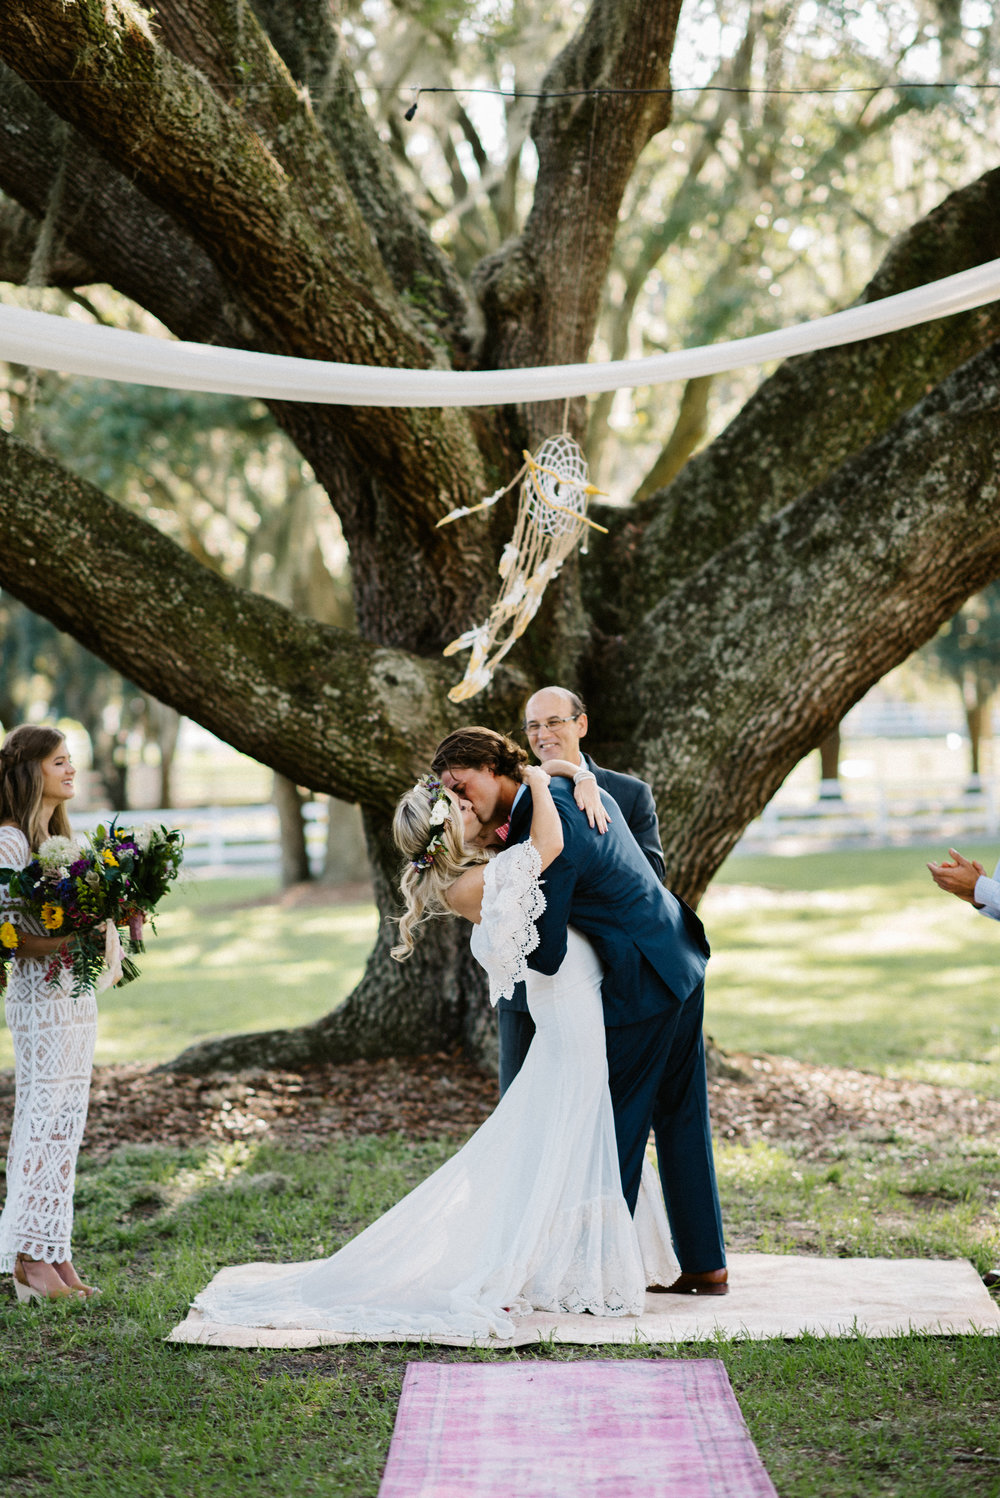 Rebecca-Read-Photography-brooke-jeremy-lang-farm-wedding-daughters-of-simone-lu-boho-wedding-southern-wedding-ivory-and-beau-bridal-boutique-savannah-bridal-boutique-savannah-wedding-dresses-lowcountry-bride-savannah-wedding-planner-19.jpg